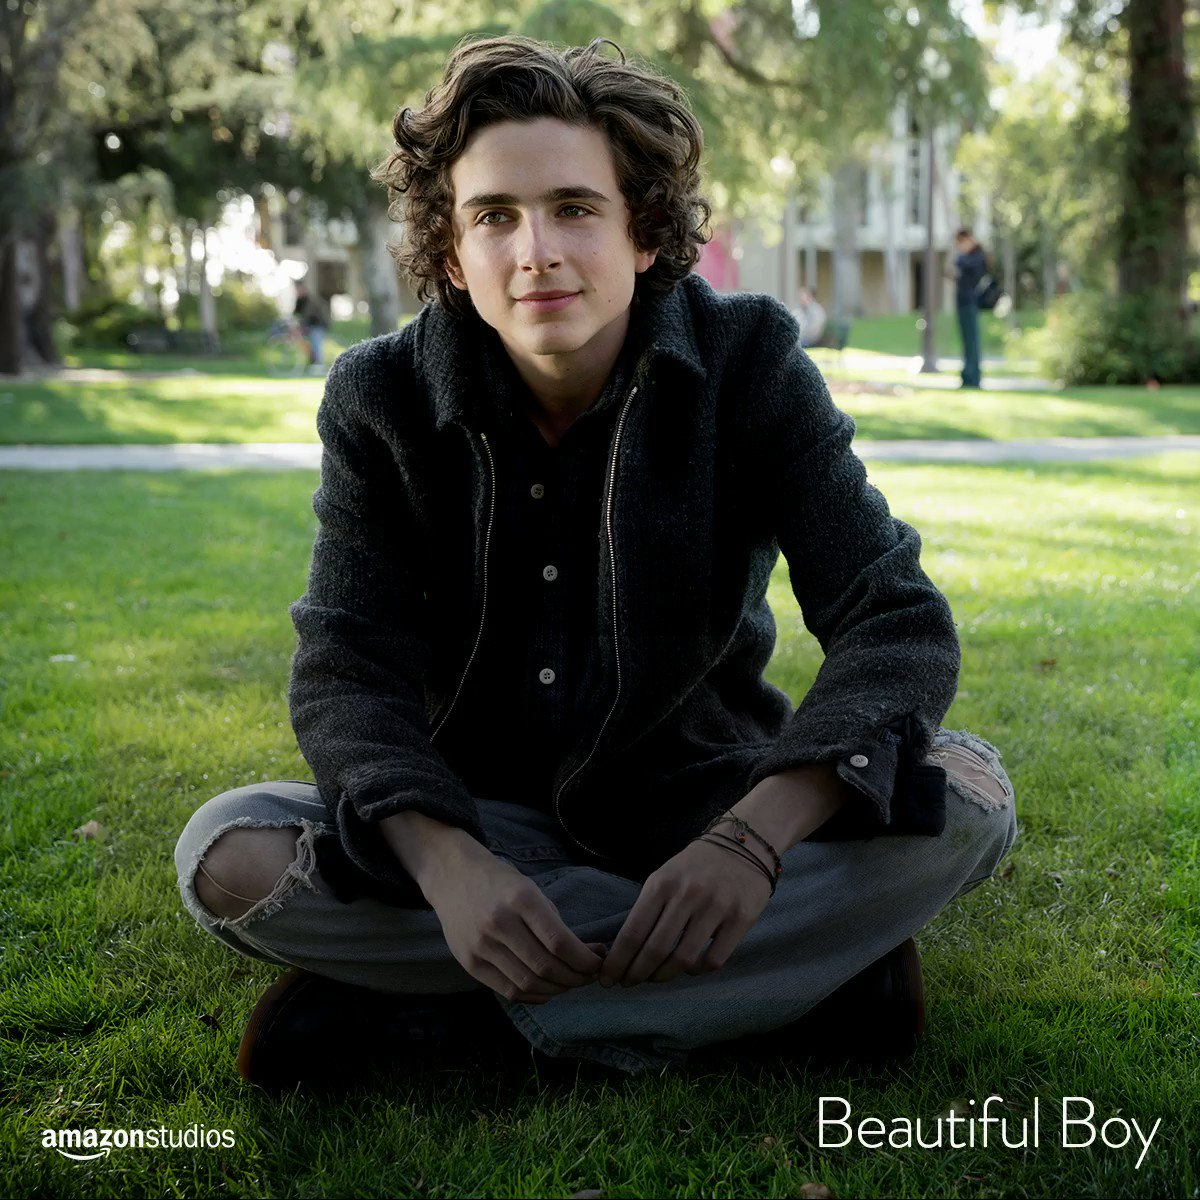 Congratulations to @realchalamet for his #GoldenGlobes nomination for Best Performance by an Actor in a Supporting Role in any Motion Picture. #BeautifulBoy